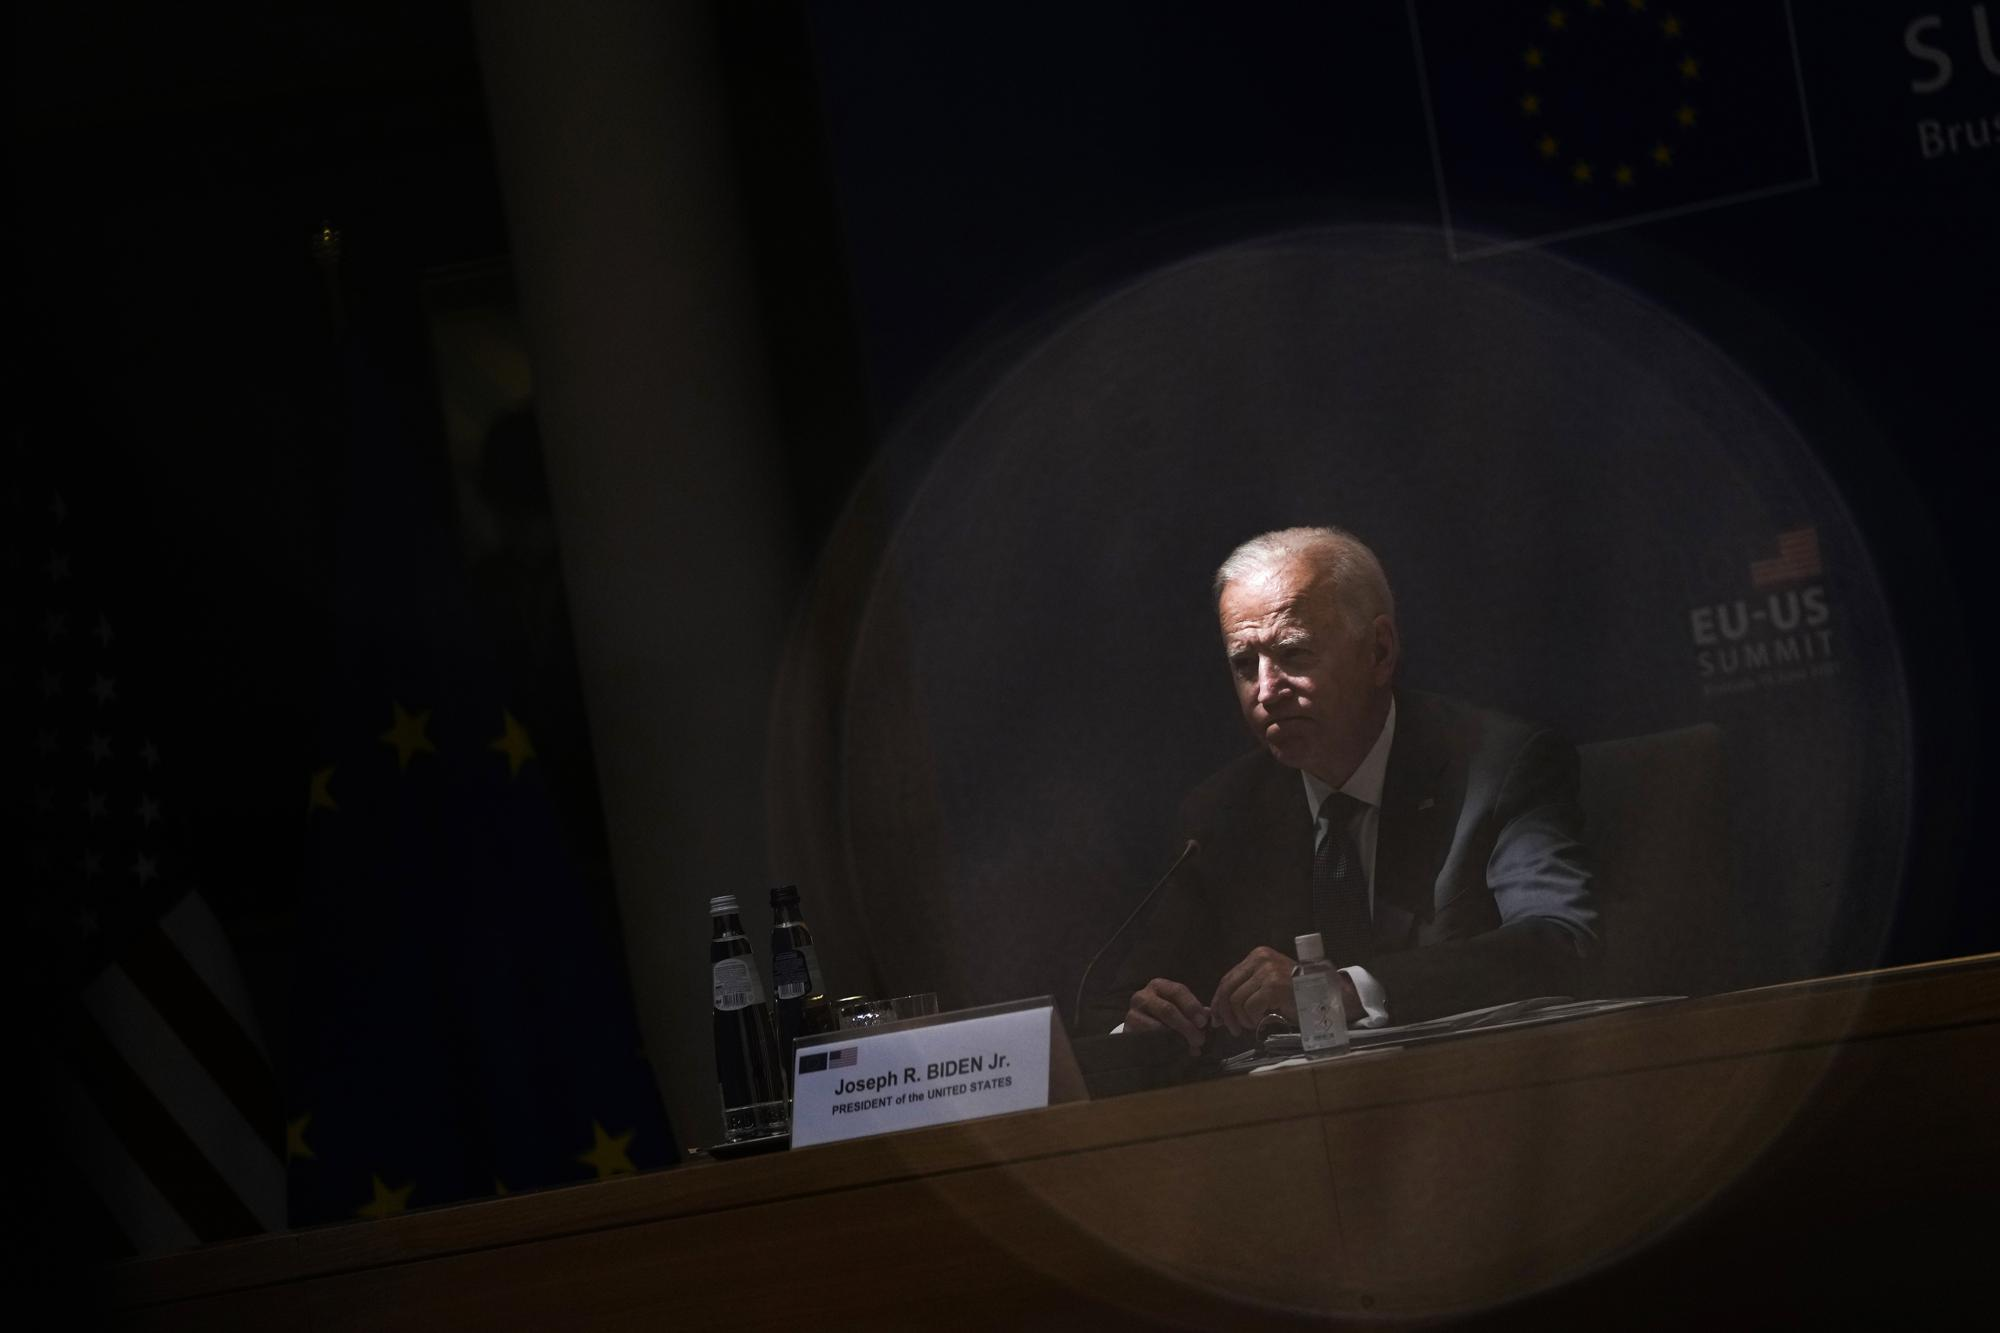 U.S. President Joe Biden listens to comments during the EU-US summit at the European Council building in Brussels, Tuesday, June 15, 2021. (AP Photo/Francisco Seco)